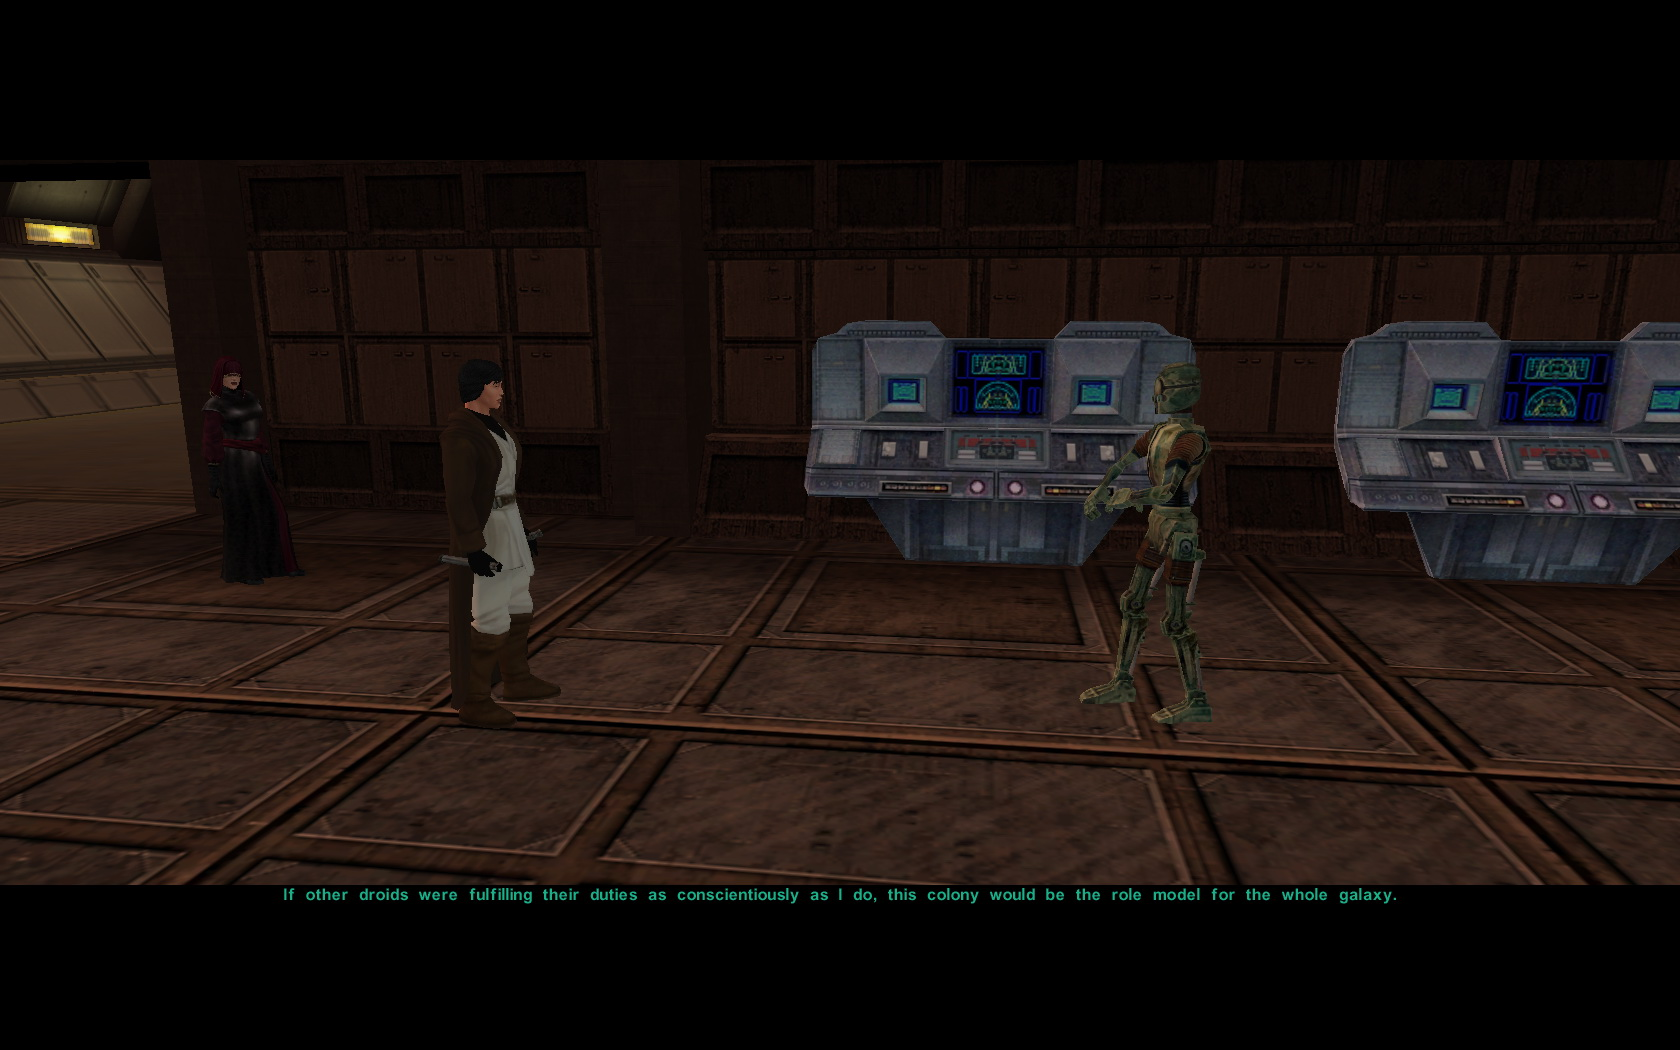 kotor 2 the sith lords restored content mod 1 8 5 русификатор - Prakard